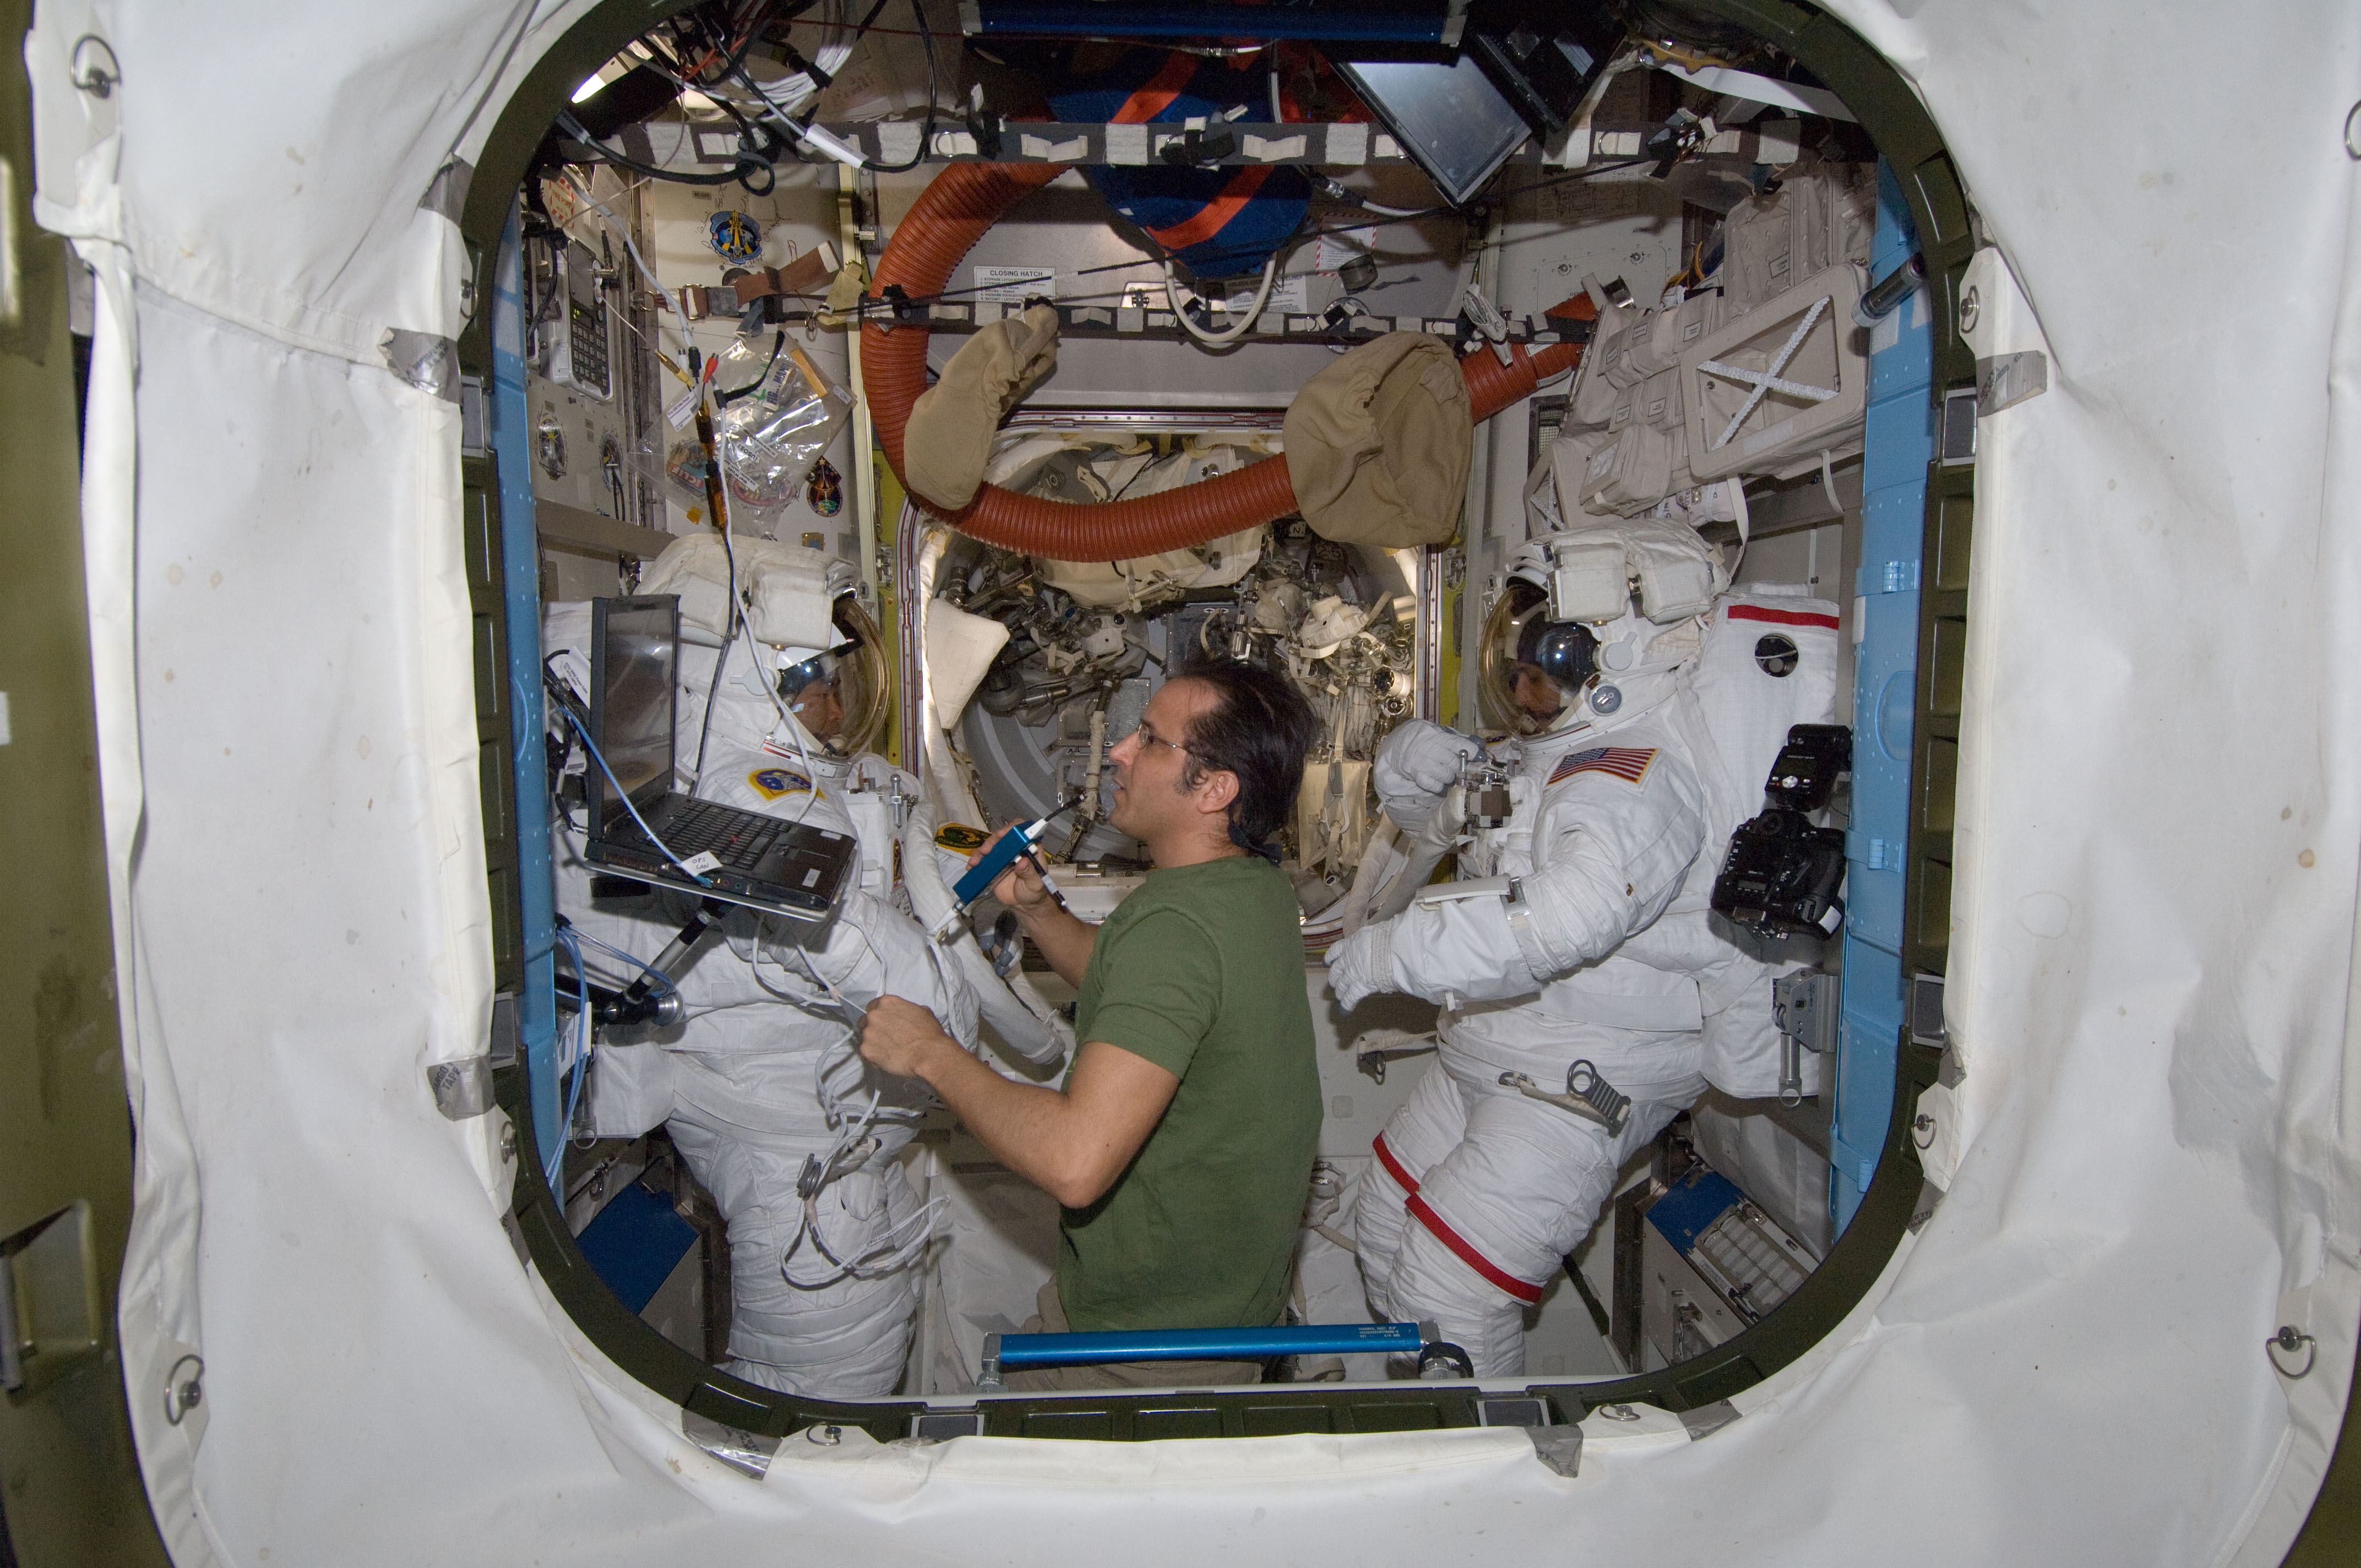 Astronauts in the Airlock